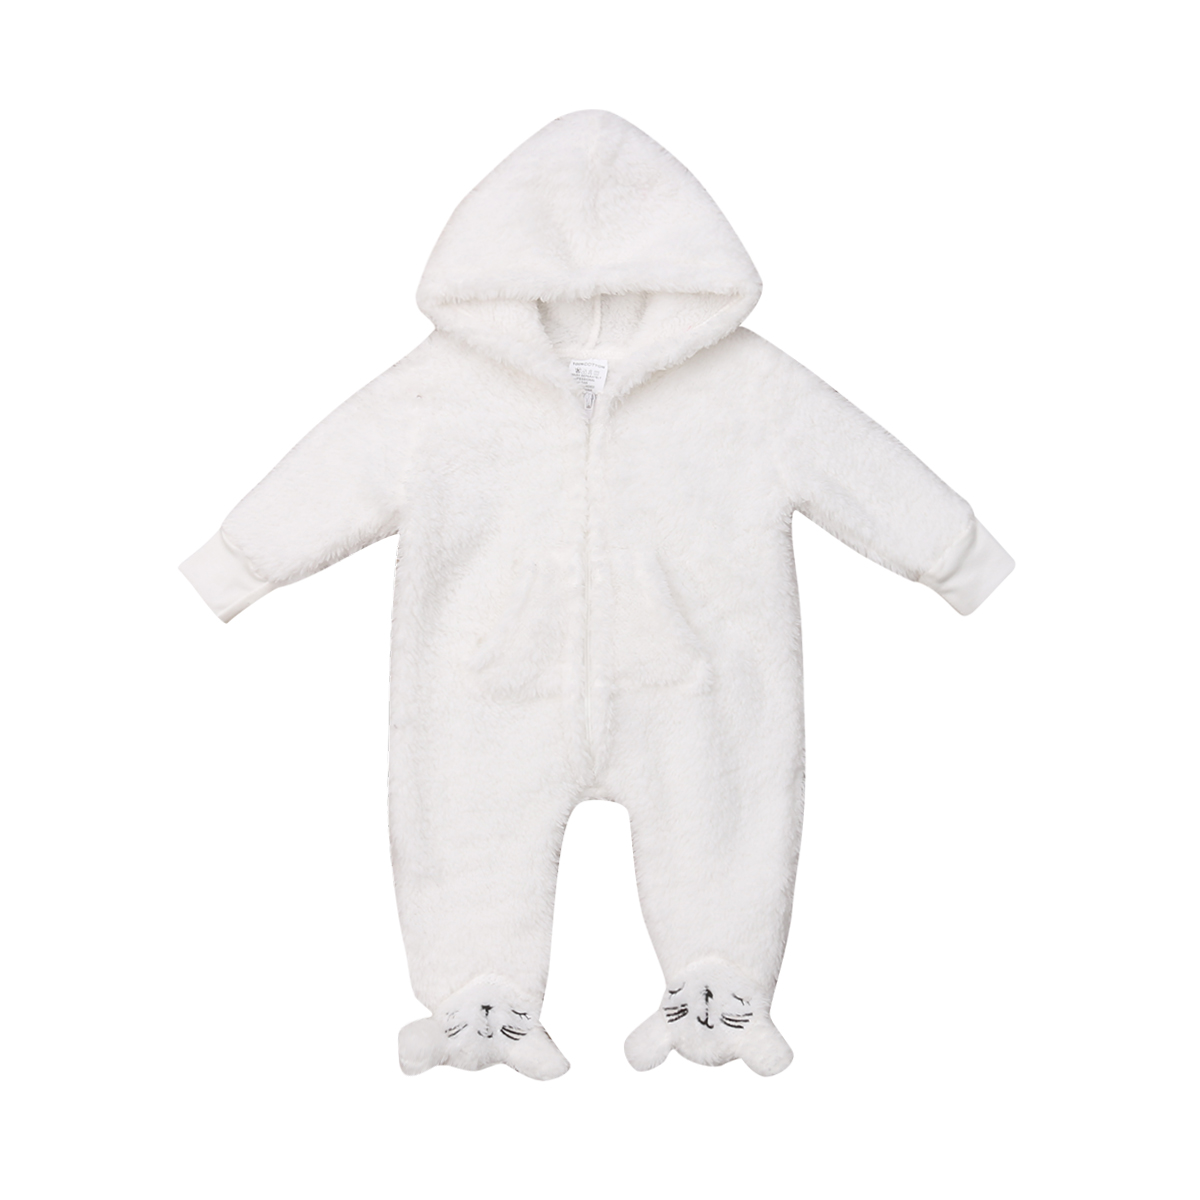 Newborn Baby Boy Girl Clothing Hooded Romper Warm Long Sleeve White Jumpsuit Outfits Set Clothes Baby Girls 0-12M